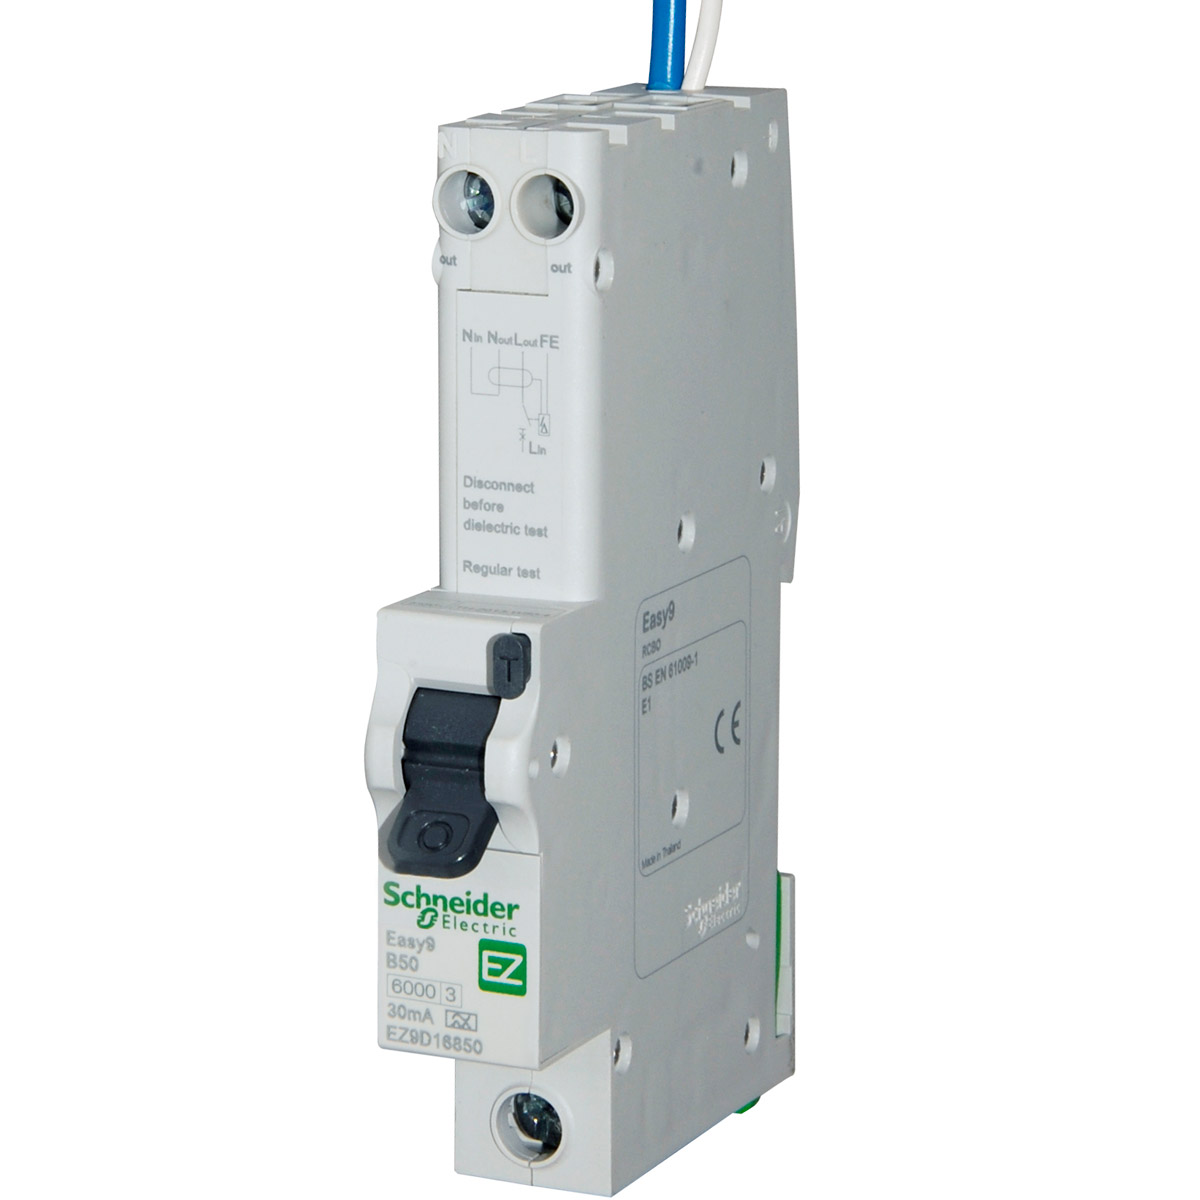 Royalty Free Stock Photo Circuit Overload Image11182435 besides Vf sei additionally How To Choose The Right Surge Protector likewise Energy Efficient Melt Shop Operation further Water Heater Could Be So Lethal. on electric circuit breaker